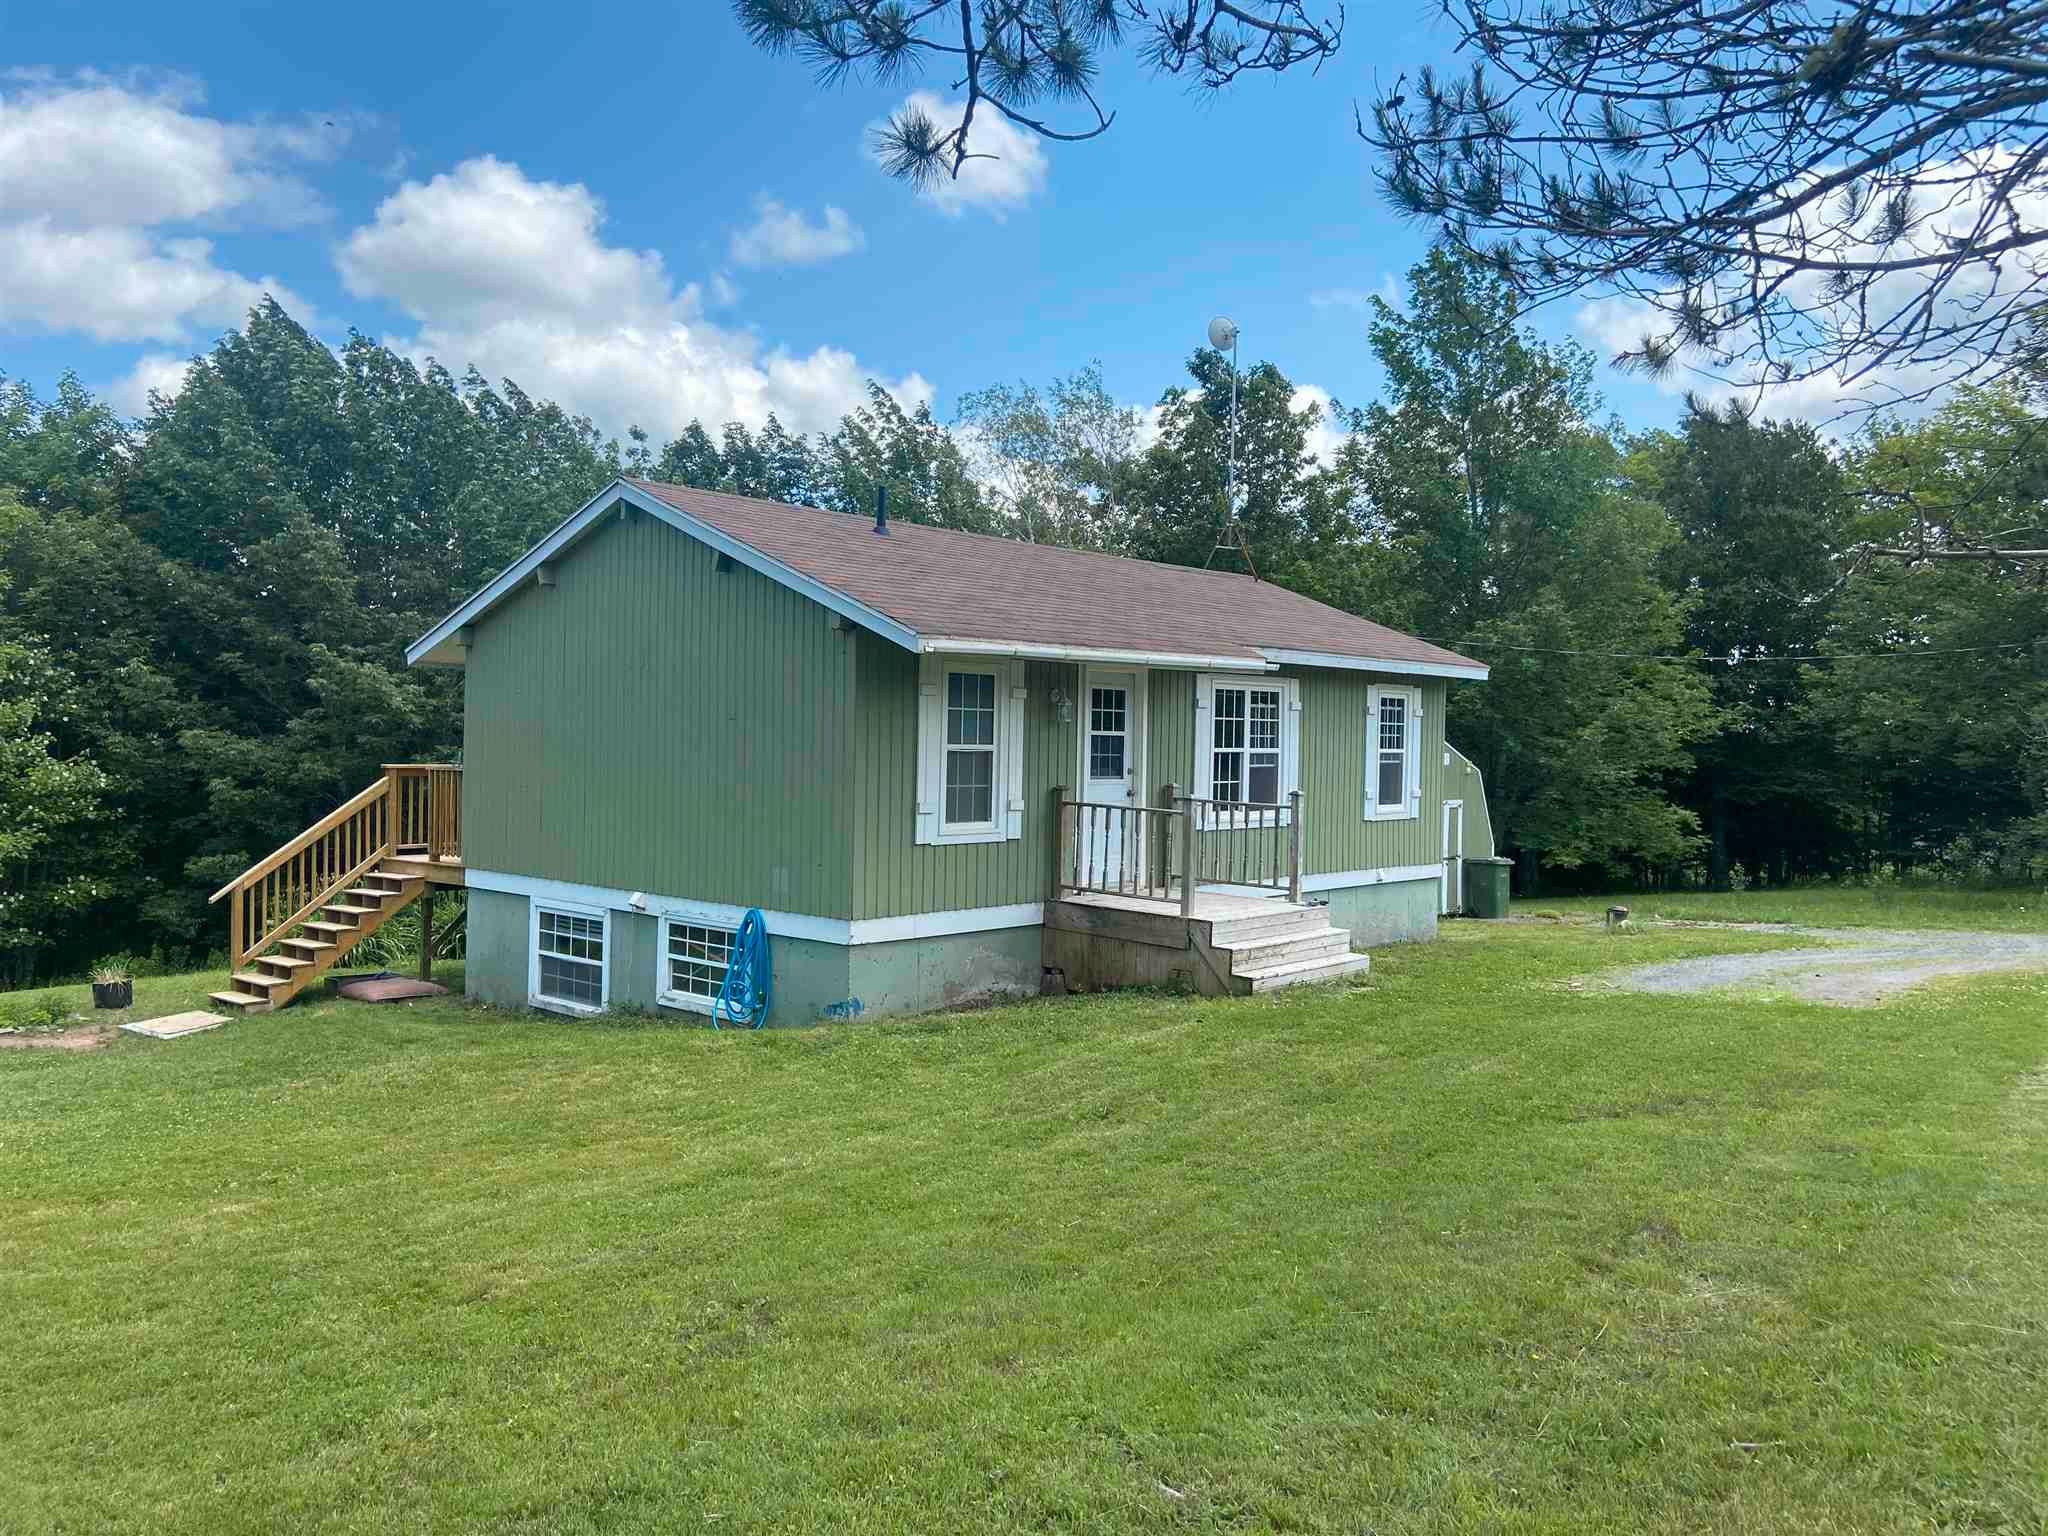 Main Photo: 214 Limerock Road in Millbrook: 108-Rural Pictou County Residential for sale (Northern Region)  : MLS®# 202117562